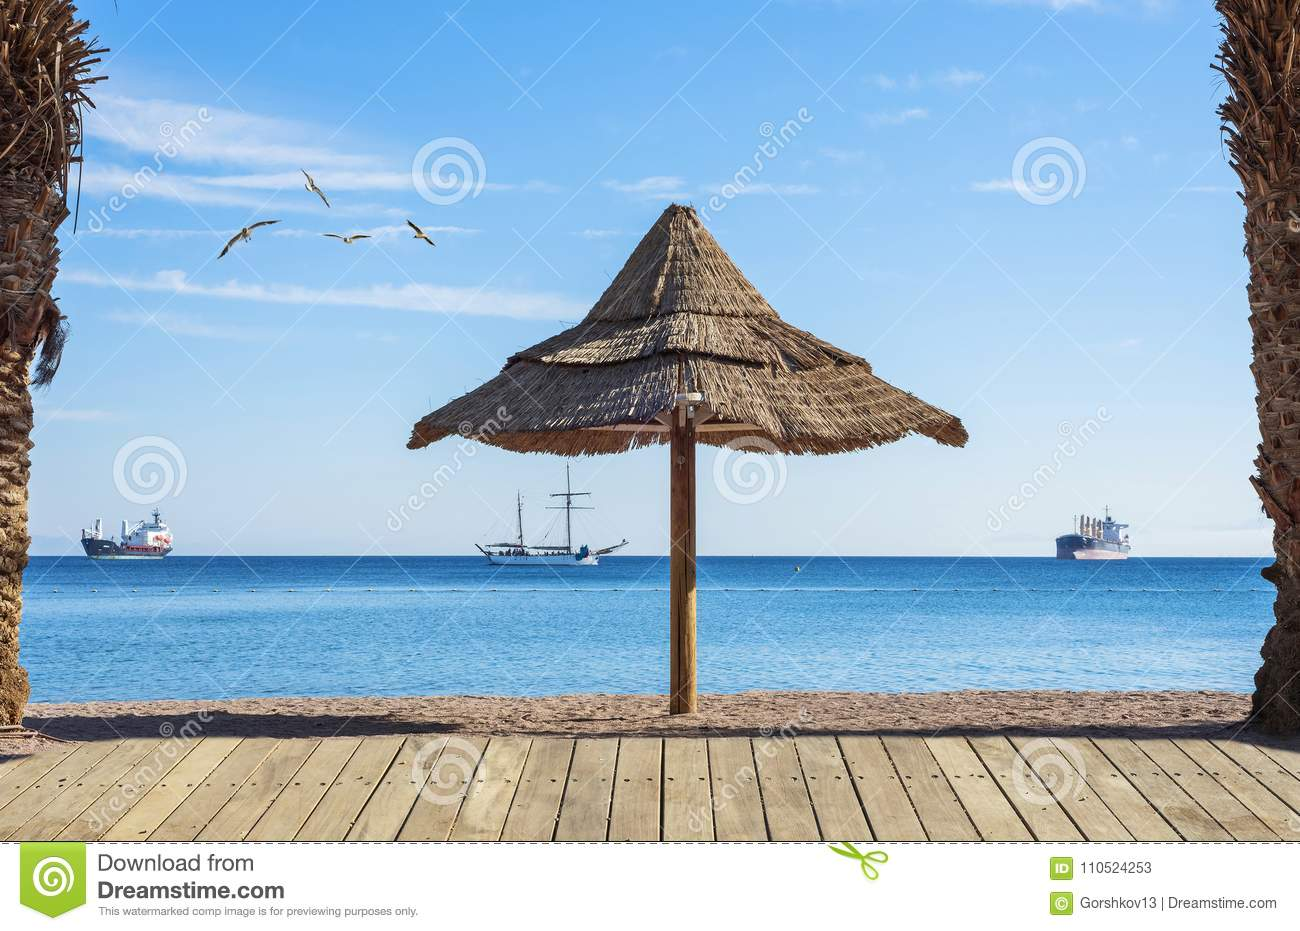 Morning on sandy beach in eilat israel stock image image of download morning on sandy beach in eilat israel stock image image of concept publicscrutiny Image collections